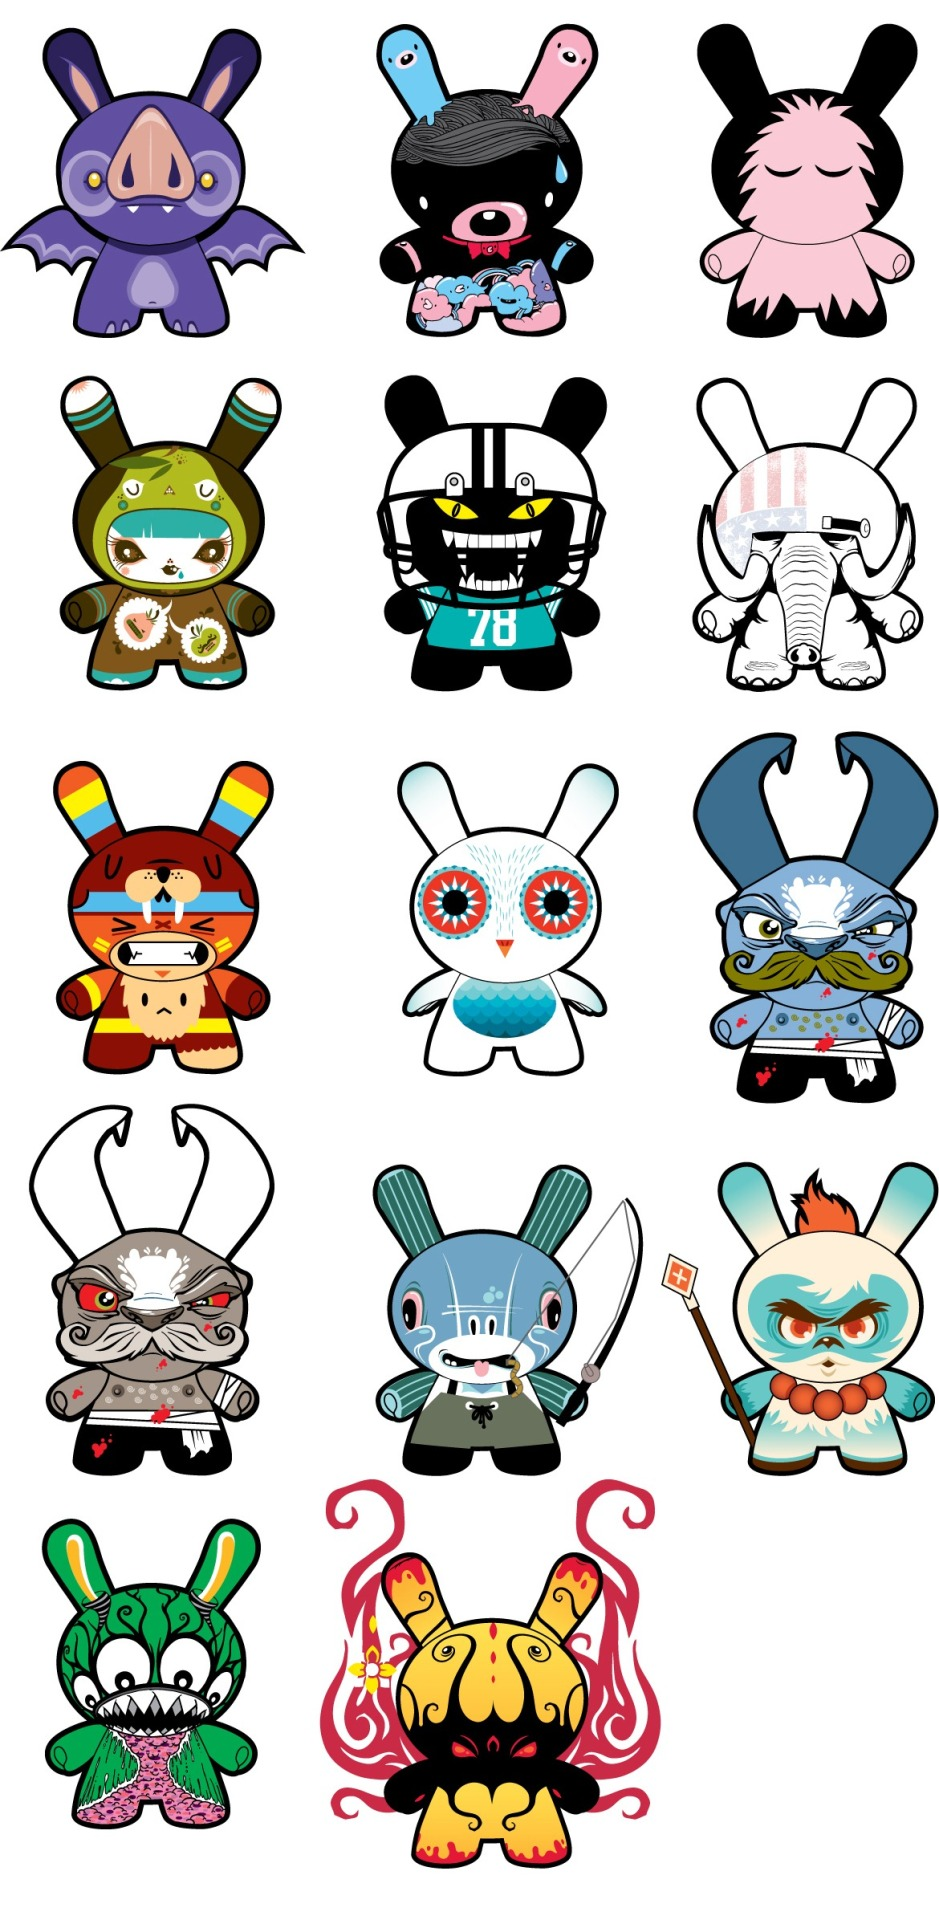 Dunny 2013 Lineup Leaked Just like last year, the Dunny 2013 series has leaked onto the Internet. This year's artists feature Andrew Bell, Nathan Jurevicius, and Scott Tolleson among others. There's one chase figure that hasn't been leaked (yet). Via Vinyl Pulse | Image via Dunny Addicts Check it: More Dunny posts on Albotas Buy: Dunny 2012 Blind Box